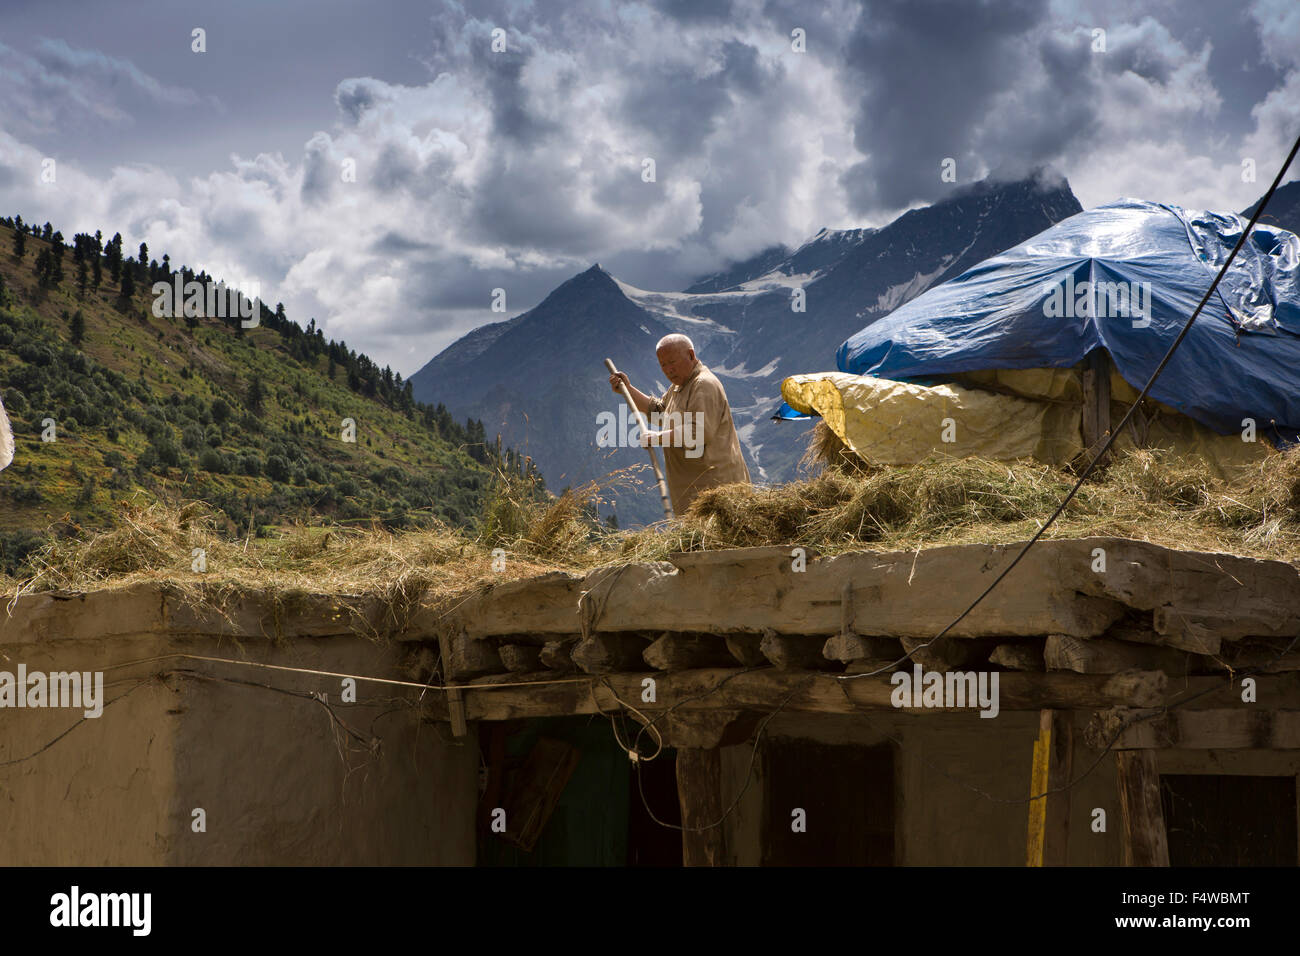 India, Himachal Pradesh, Lahaul and Spiti, Keylong Bazaar, man arranging harvested hay to dry on house roof - Stock Image